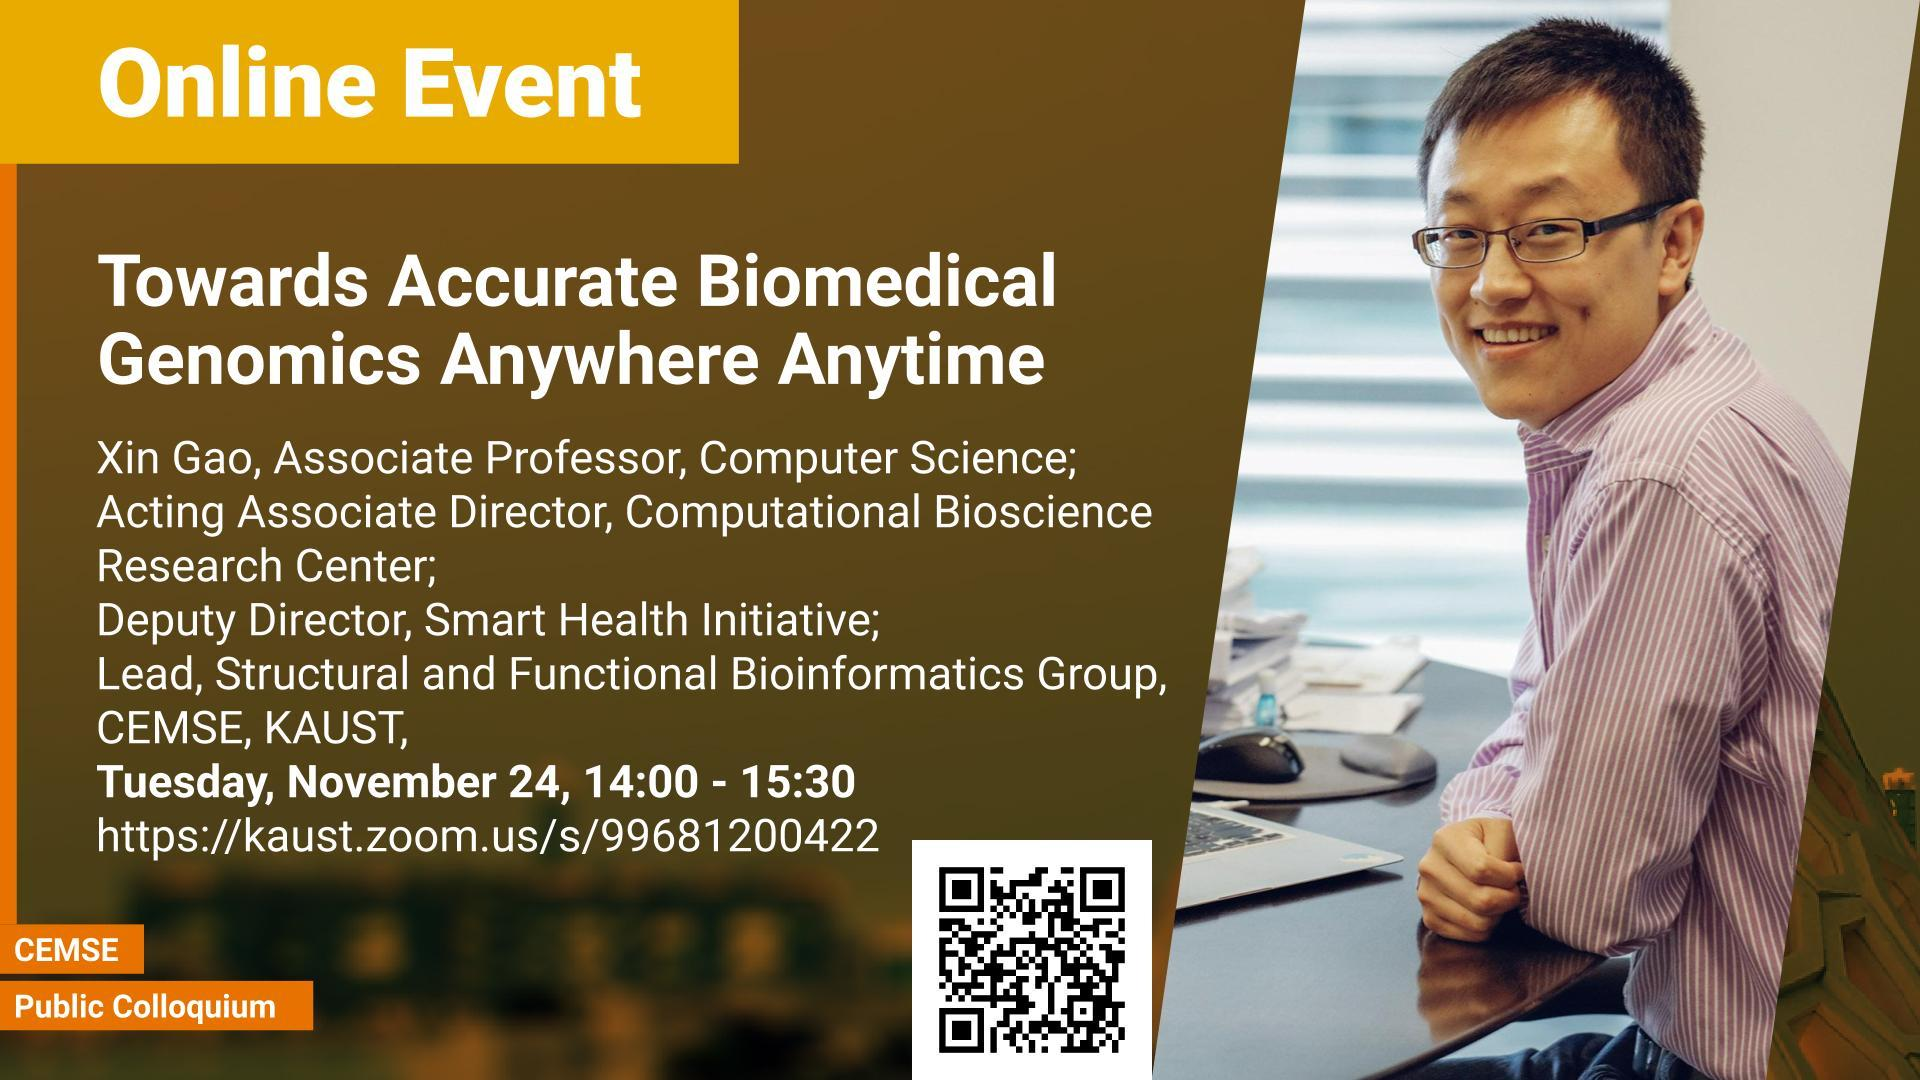 KAUST CEMSE Xin Gao Towards Accurate Biomedical Genomics Anywhere Anytime